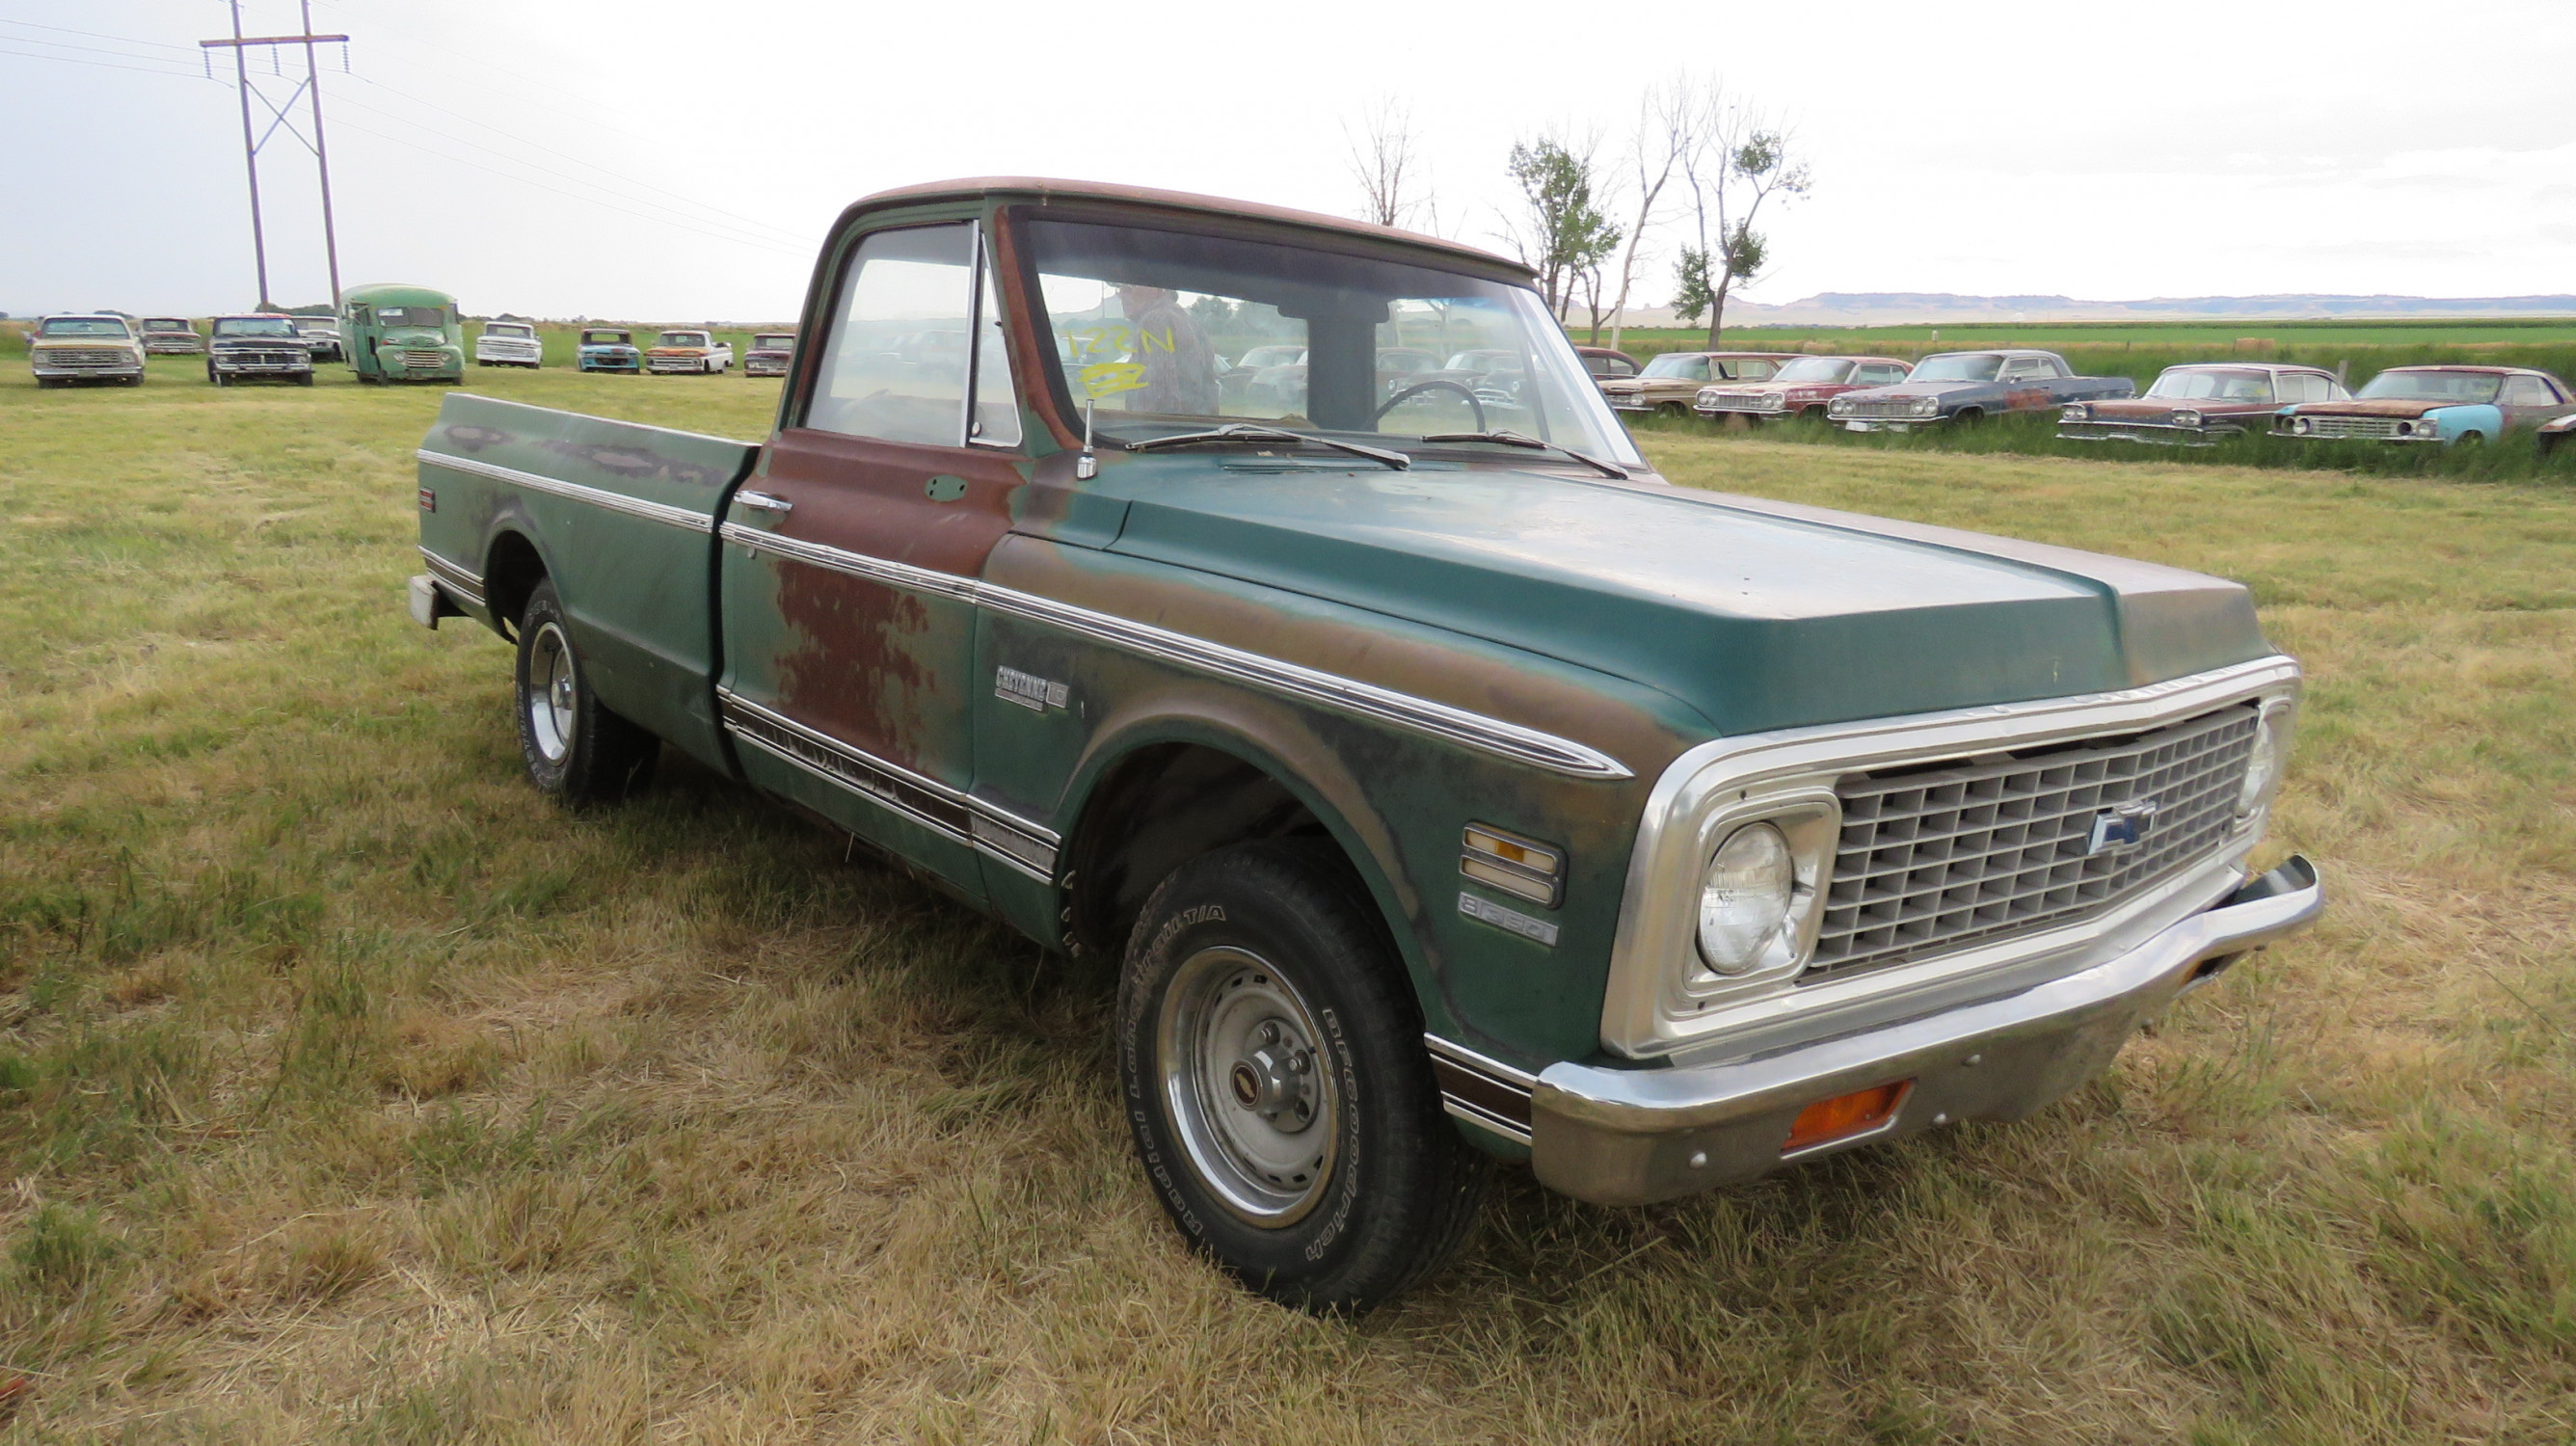 1972 CHEVROLET PICKUP - Image 1